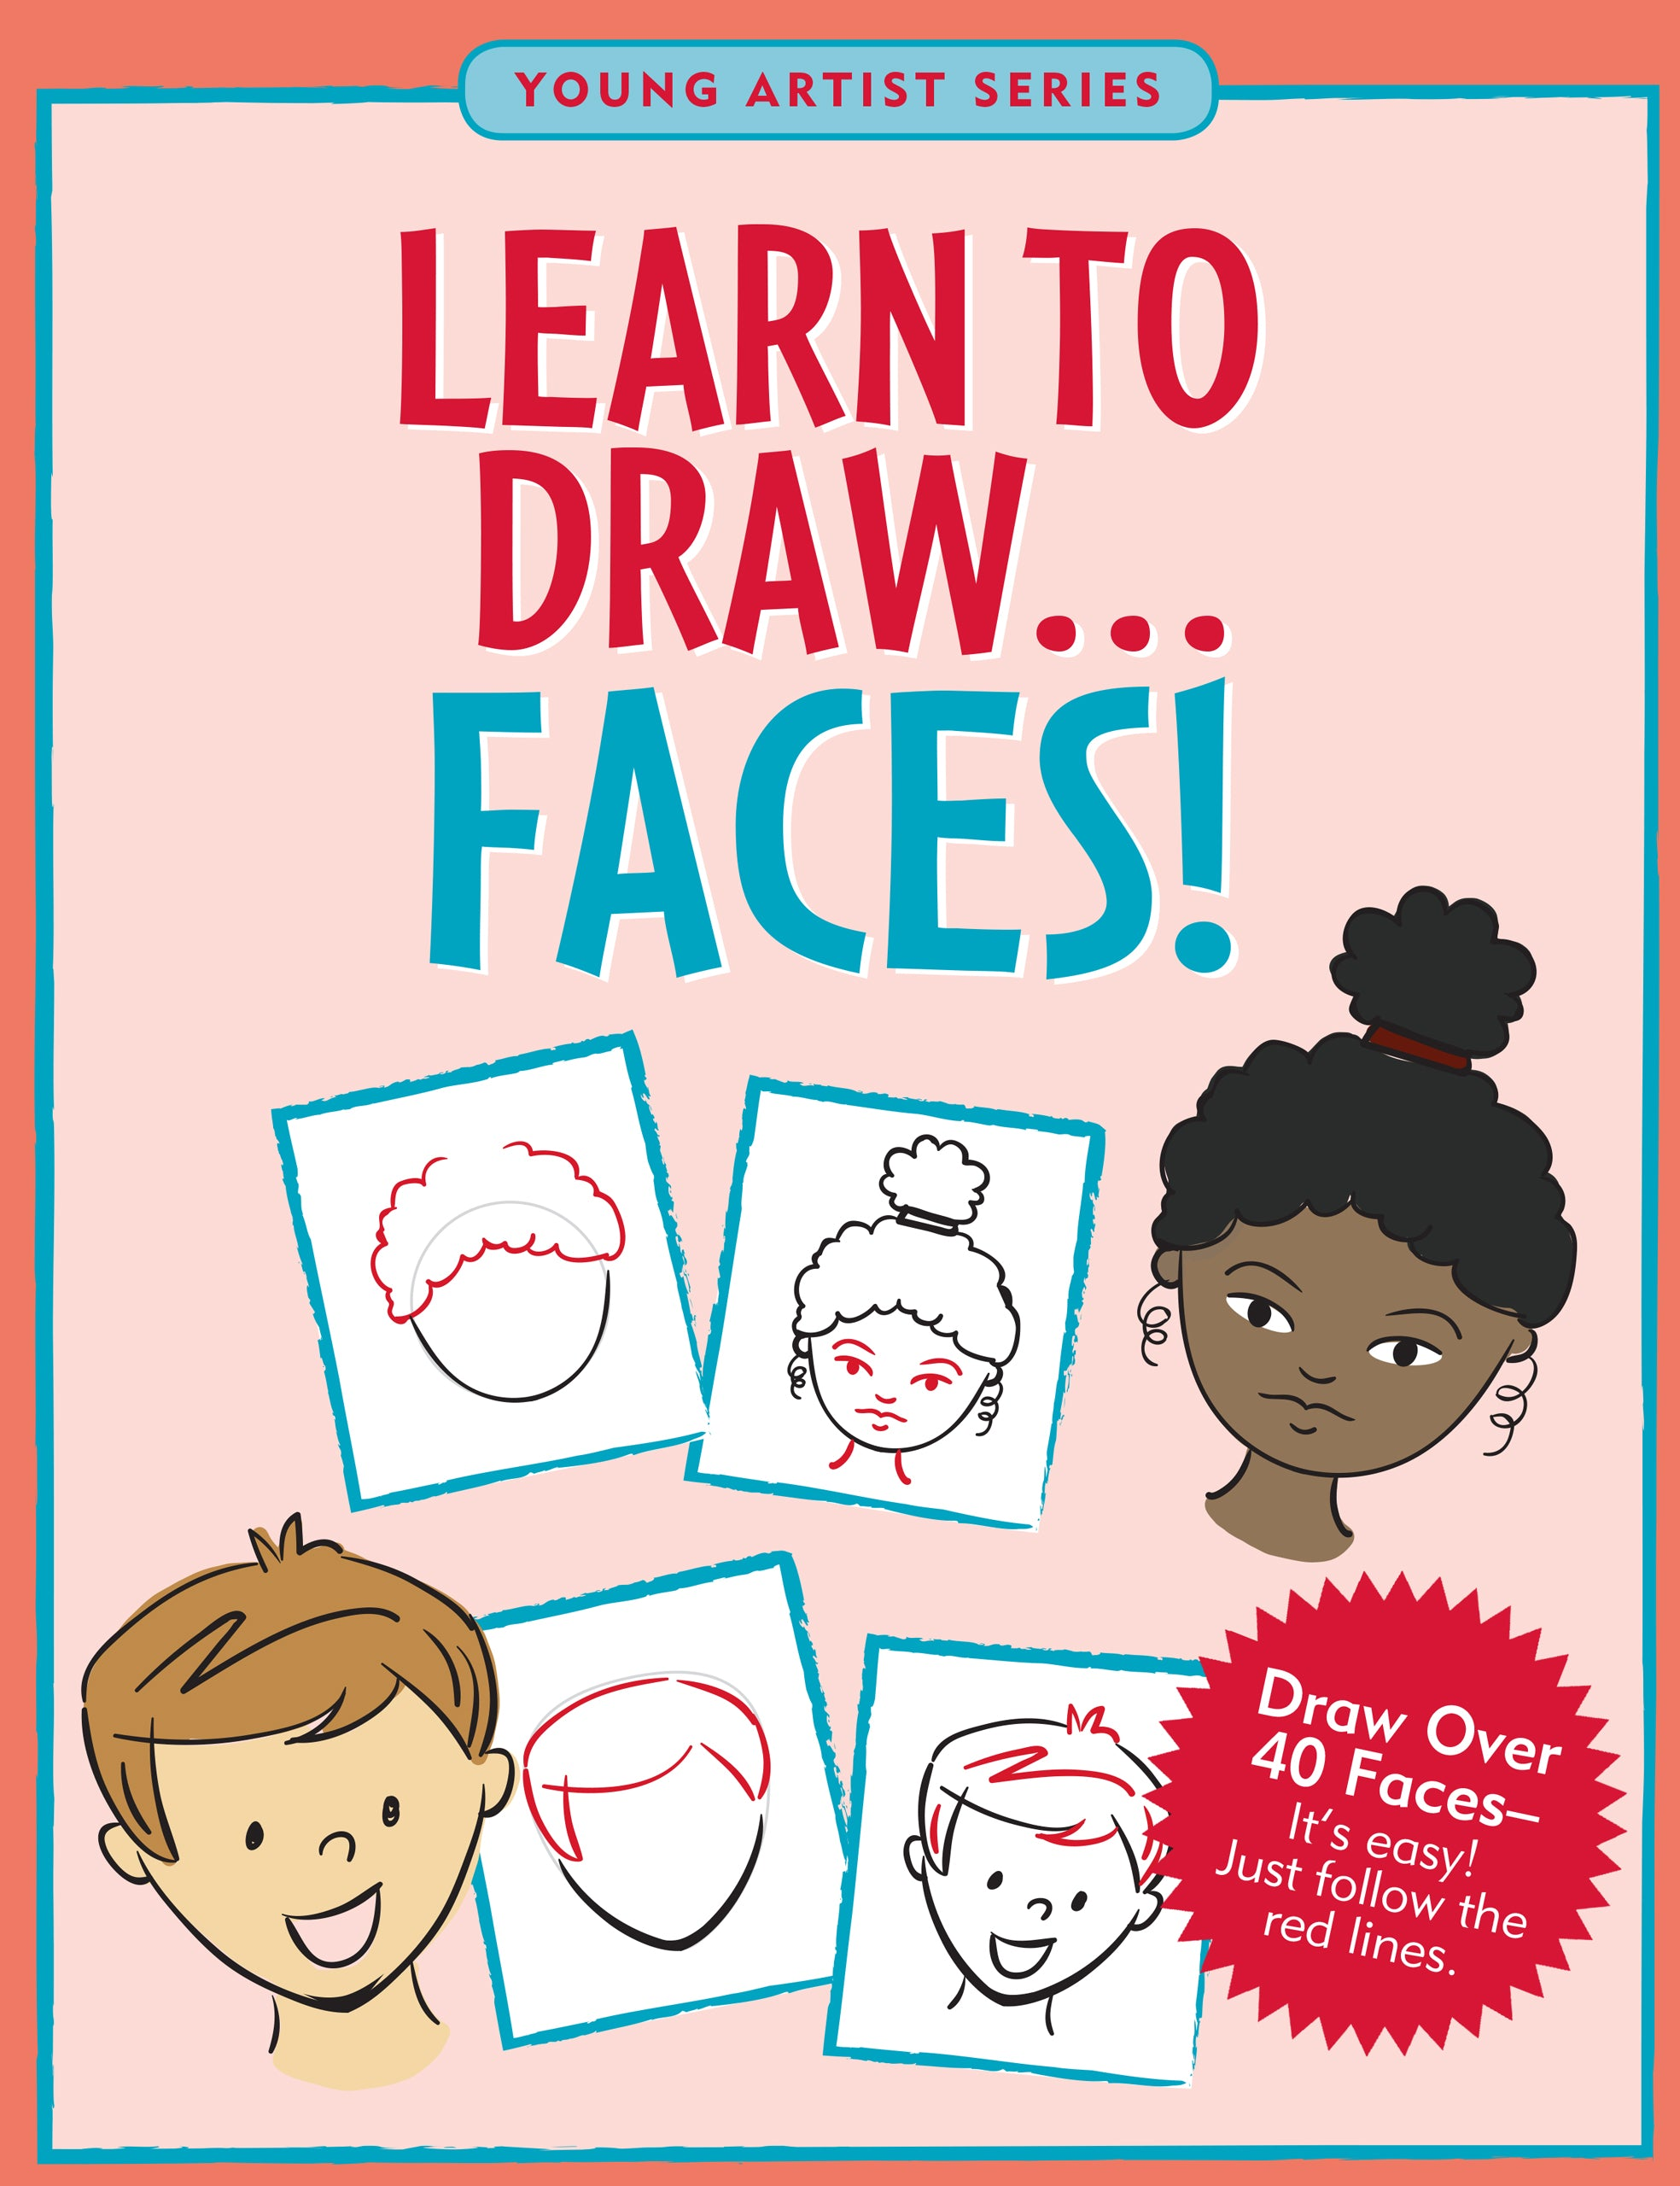 Learn To Draw... Faces!